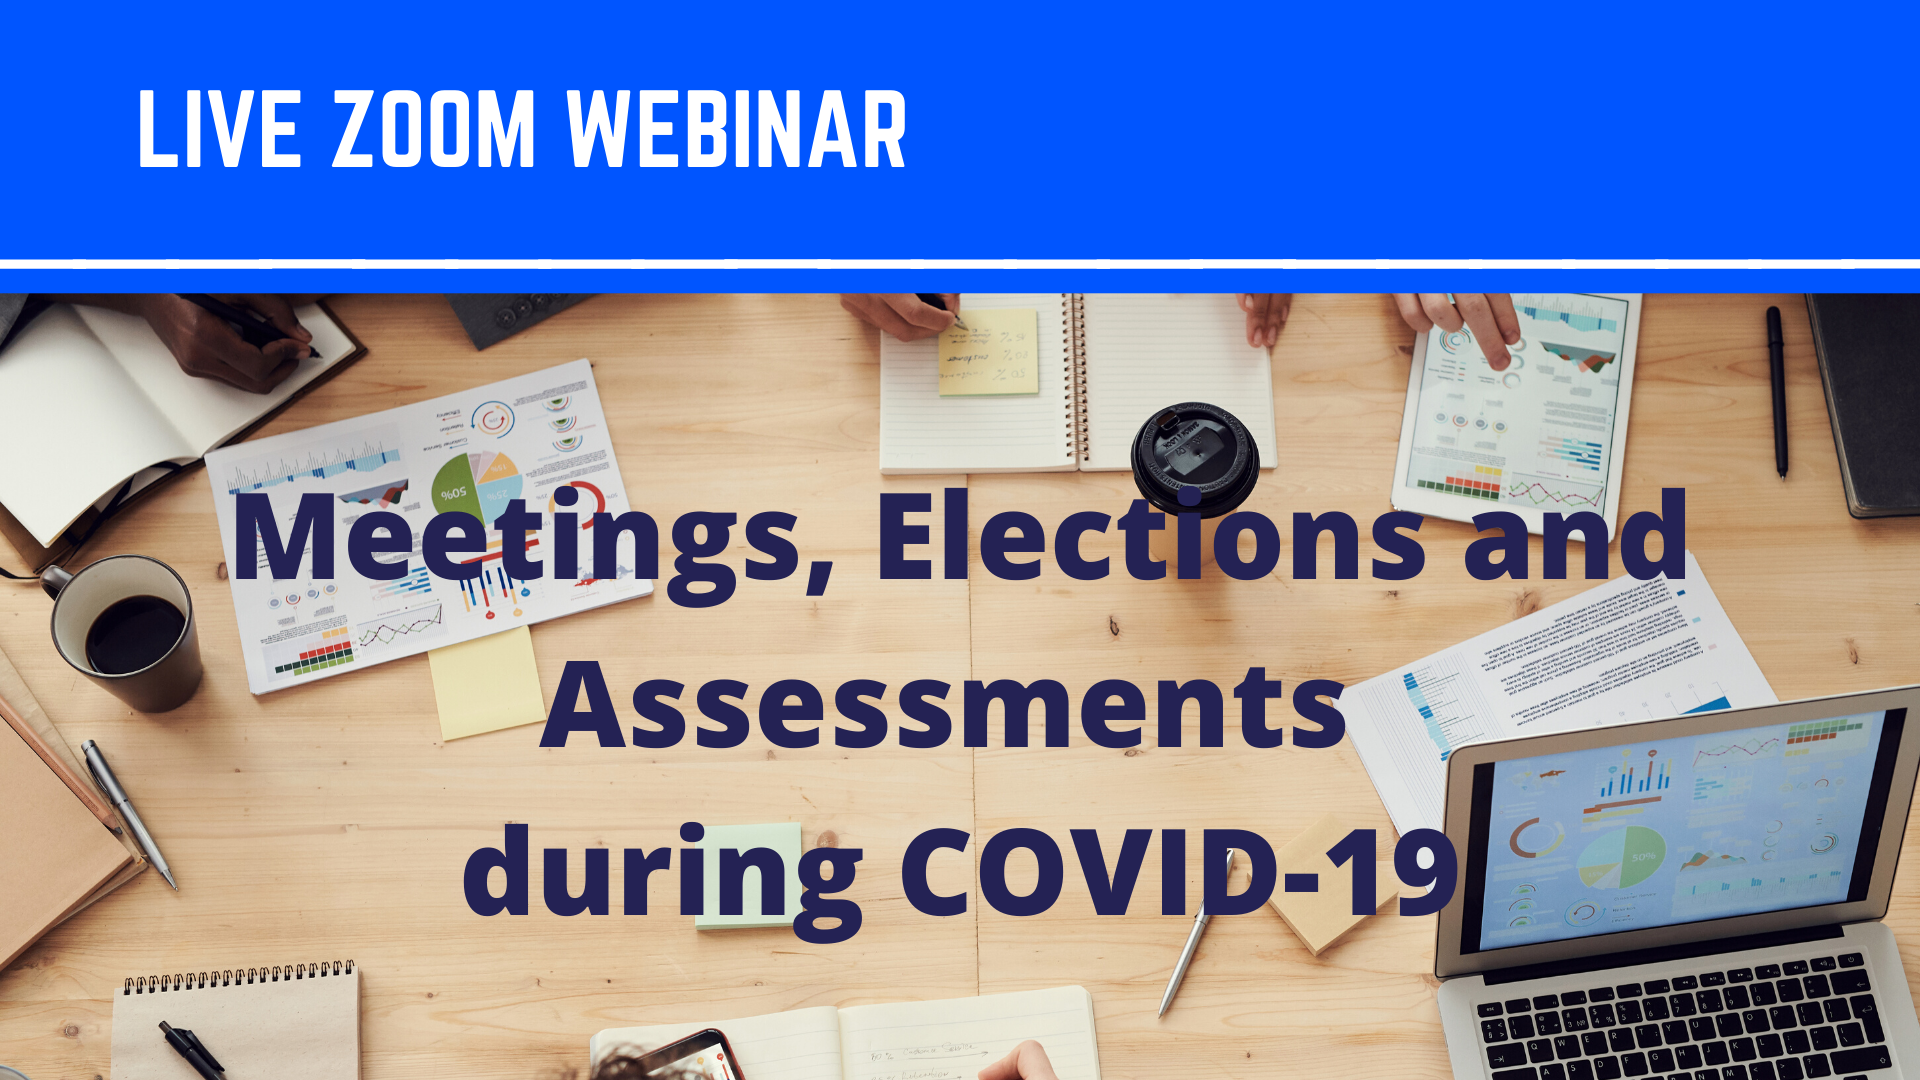 Webinar – Meetings, Elections and Assessments during COVID-19